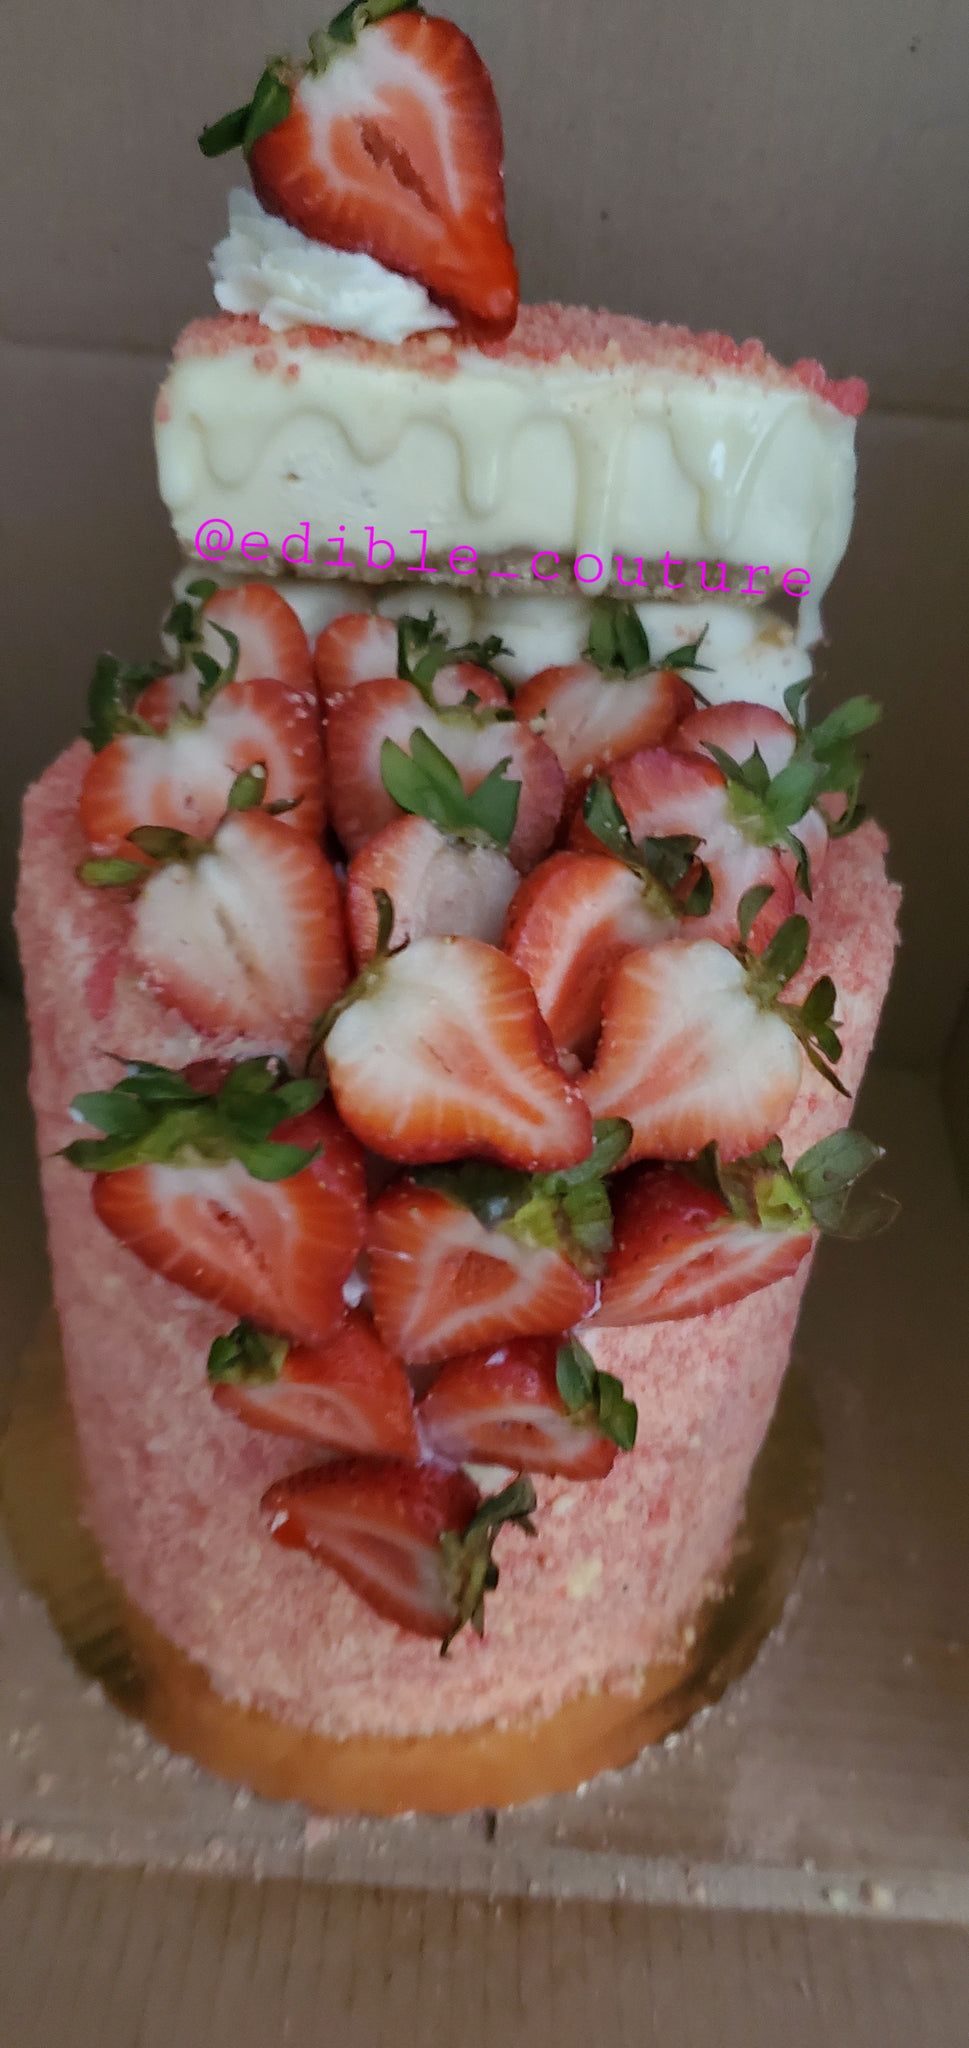 Strawberry Shortcake Cheesecake Cake w/Fresh Strawberry Filling